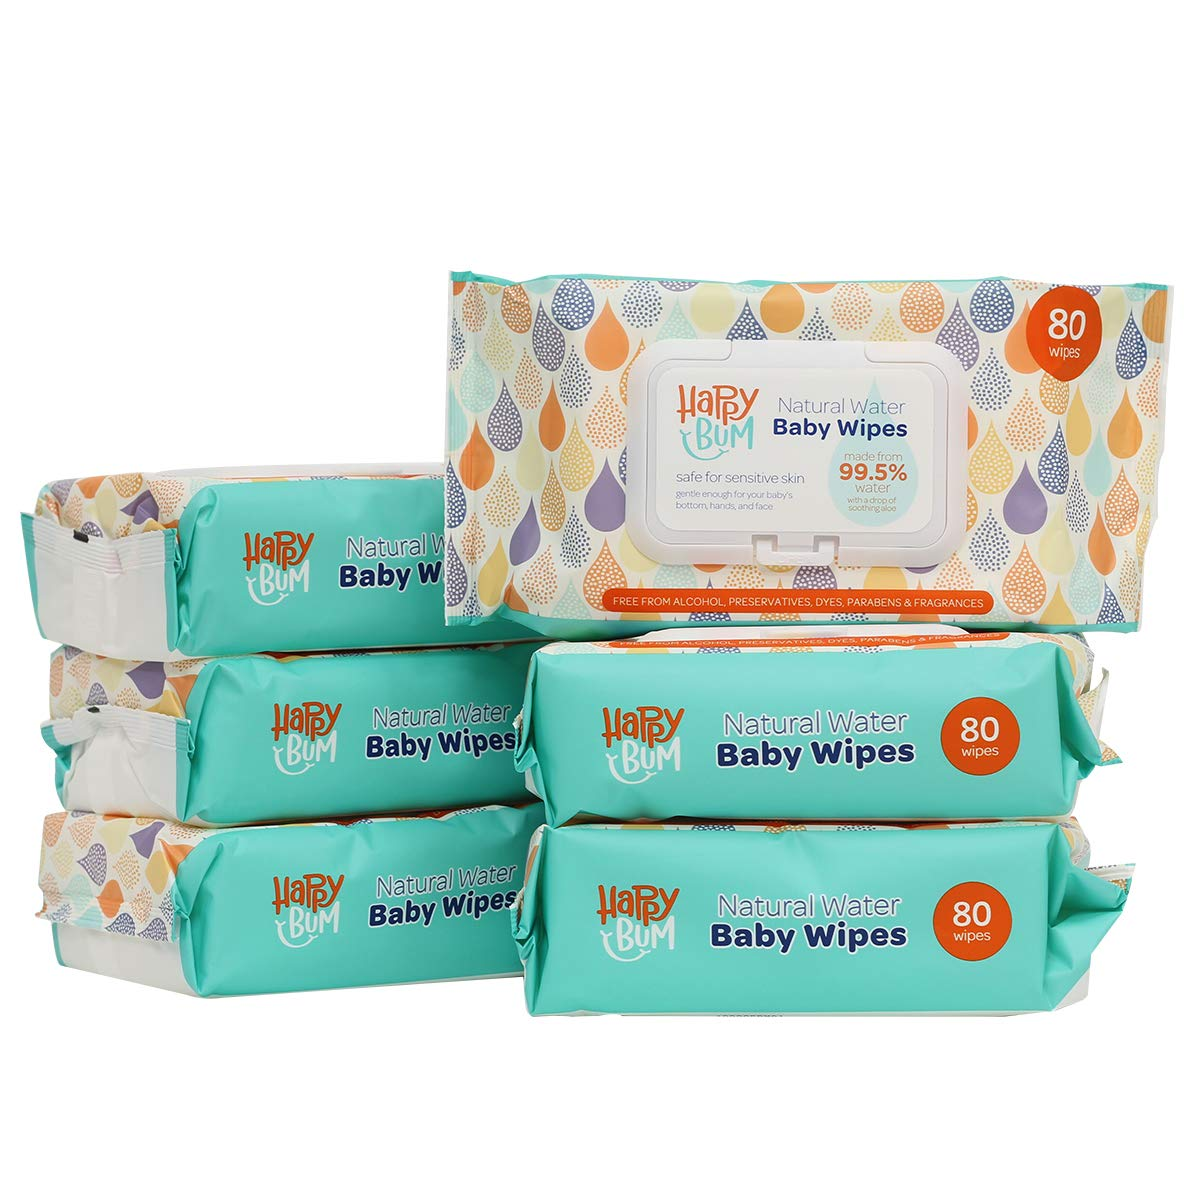 Happy Bum Sensitive Water-Based Baby Diaper Wipes, Natural Care Unscented Face, Hand and Baby Wipes with Flip Top Dispenser, 6 Refill Packs, 480 Count Total. Spa Luxetique